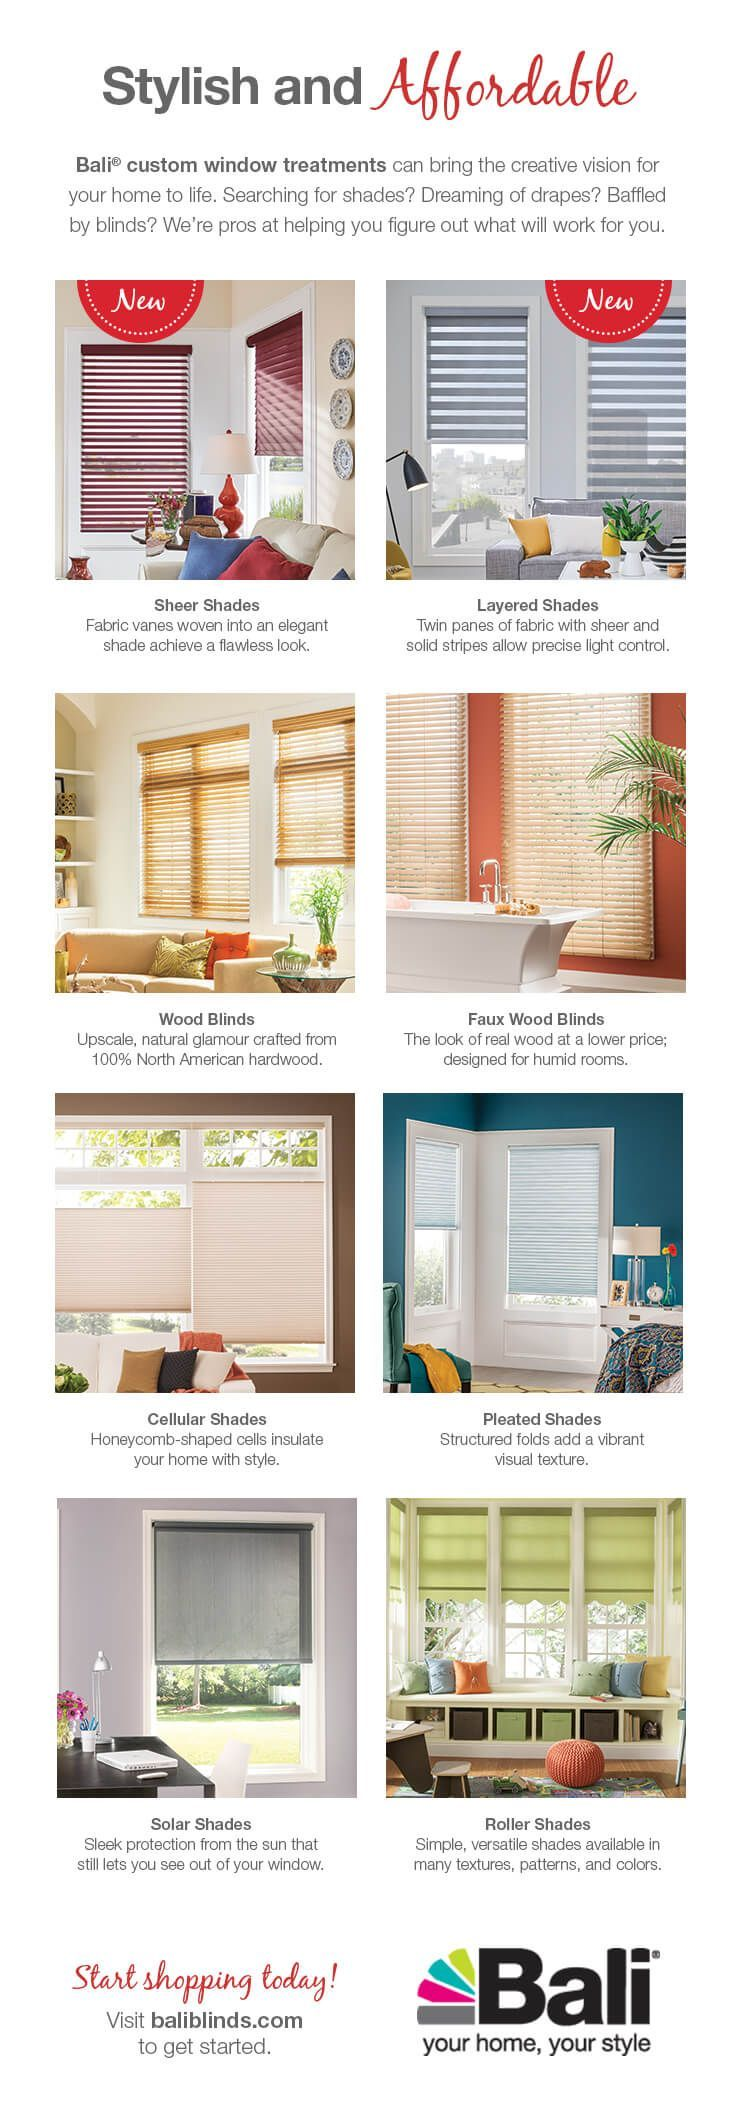 Bali Custom Window Treatments Are Stylish And Affordable. Find Something  For Your Home In One